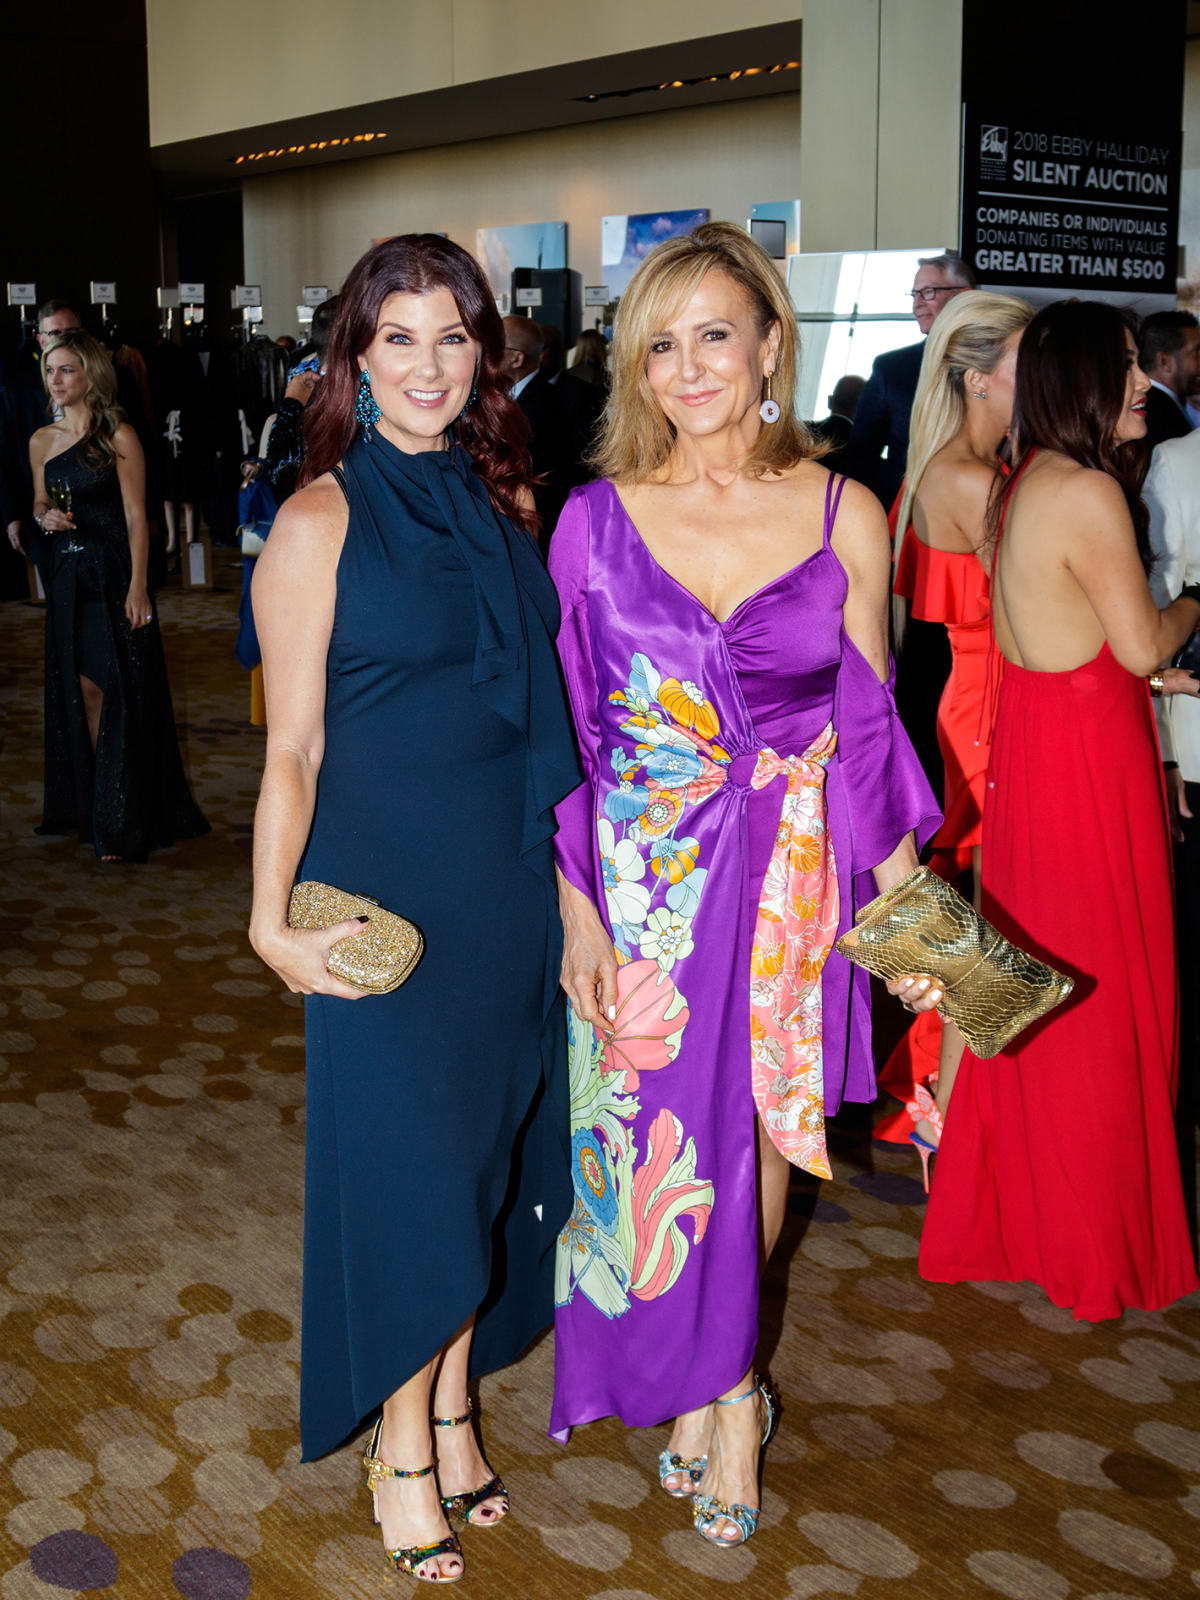 Cynthia Smoot, Jane McGarry at House of DIFFA 2018